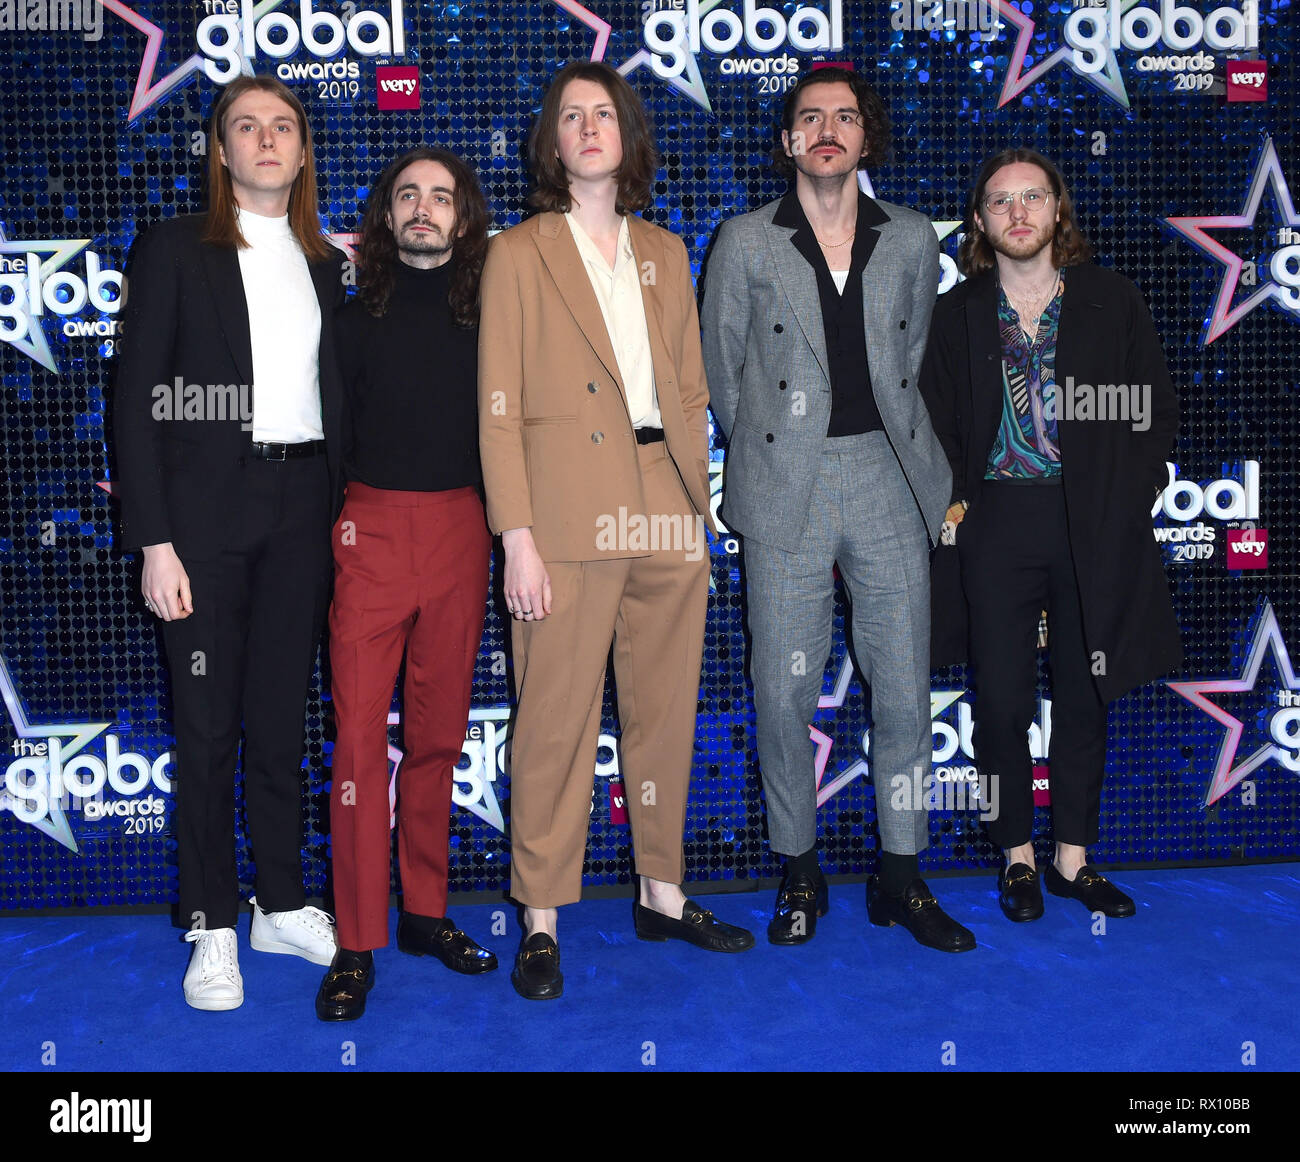 Photo Must Be Credited ©Alpha Press 079965 07/03/2019 Blossoms Tom Ogden, Charlie Salt, Josh Dewhurst, Joe Donovan and Myles Kellock The Global Awards 2019 With Very.co.uk at Eventim Apollo Hammersmith London - Stock Image